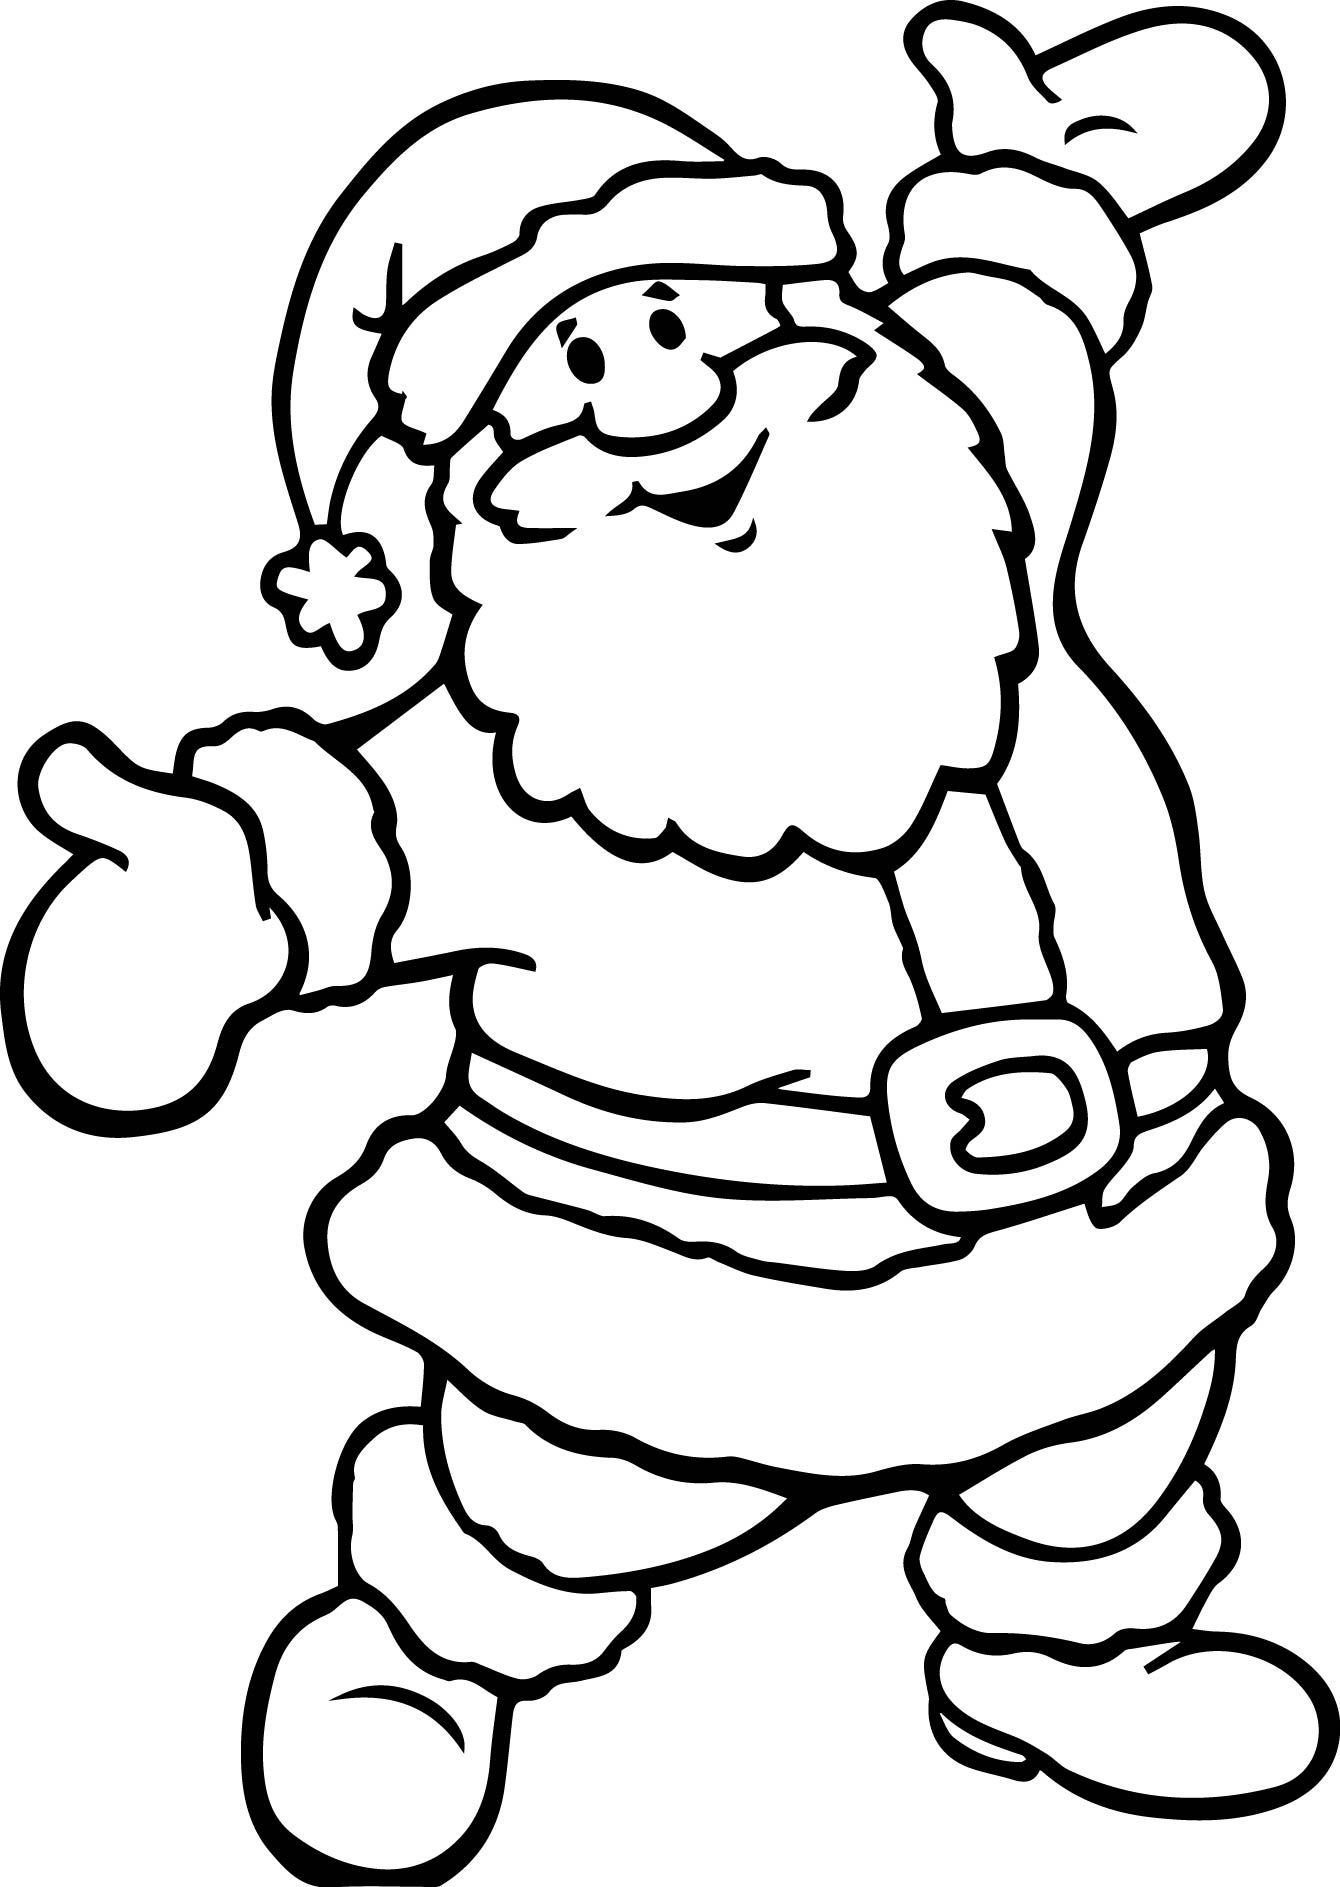 Cool Santa Claus Printable Coloring Pages Have Fun Coloring The